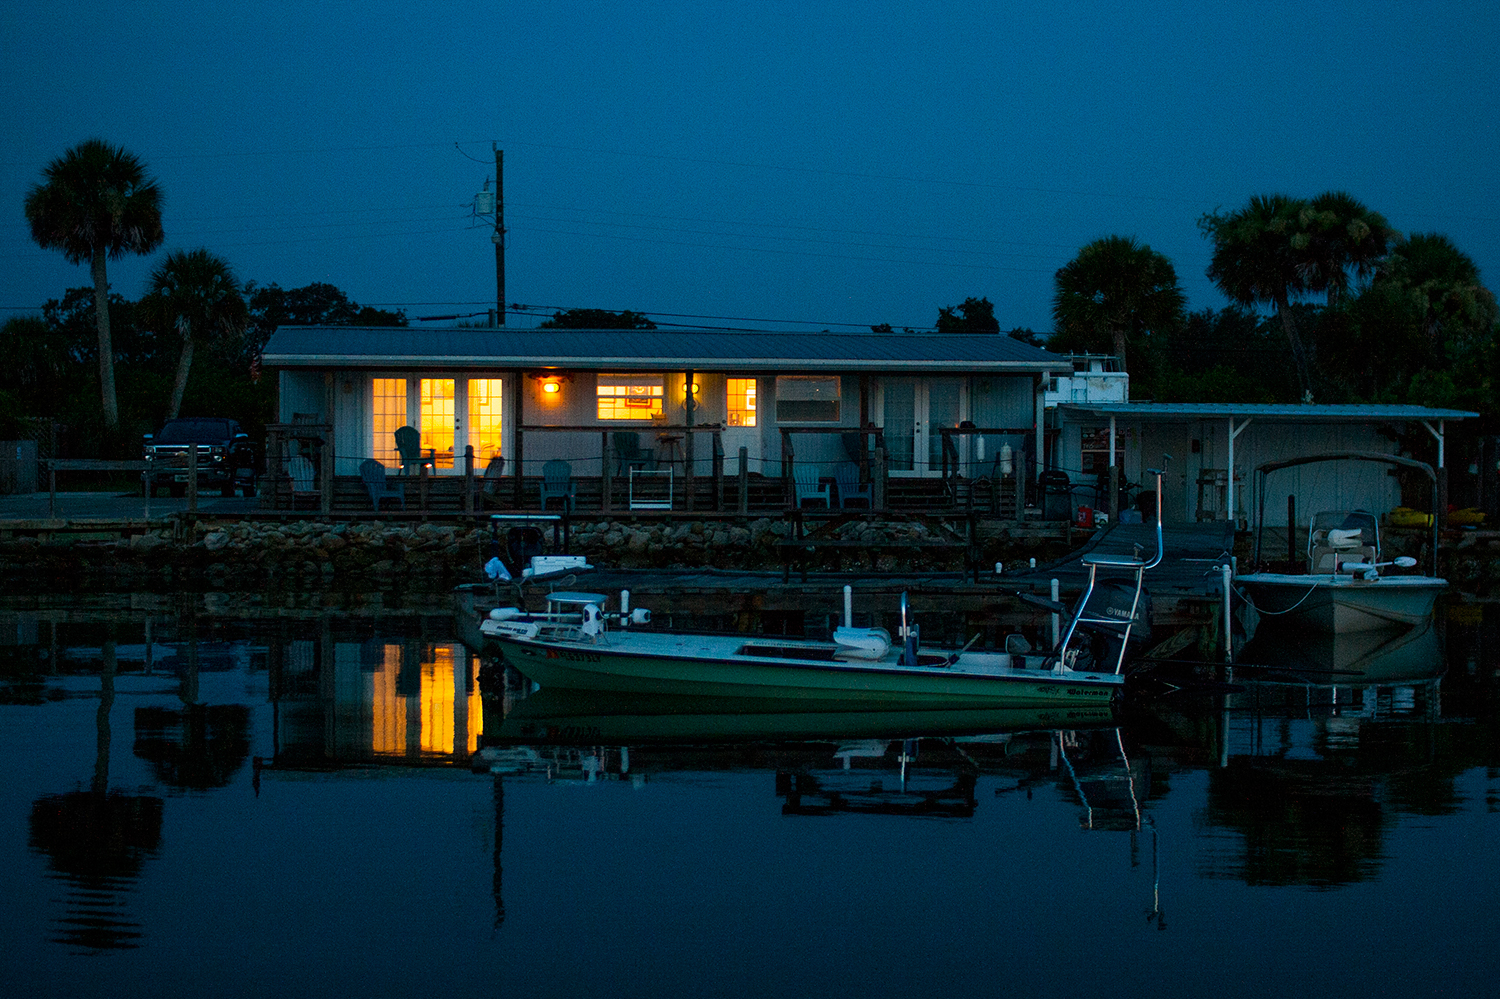 Fishing lodge destination photography sample